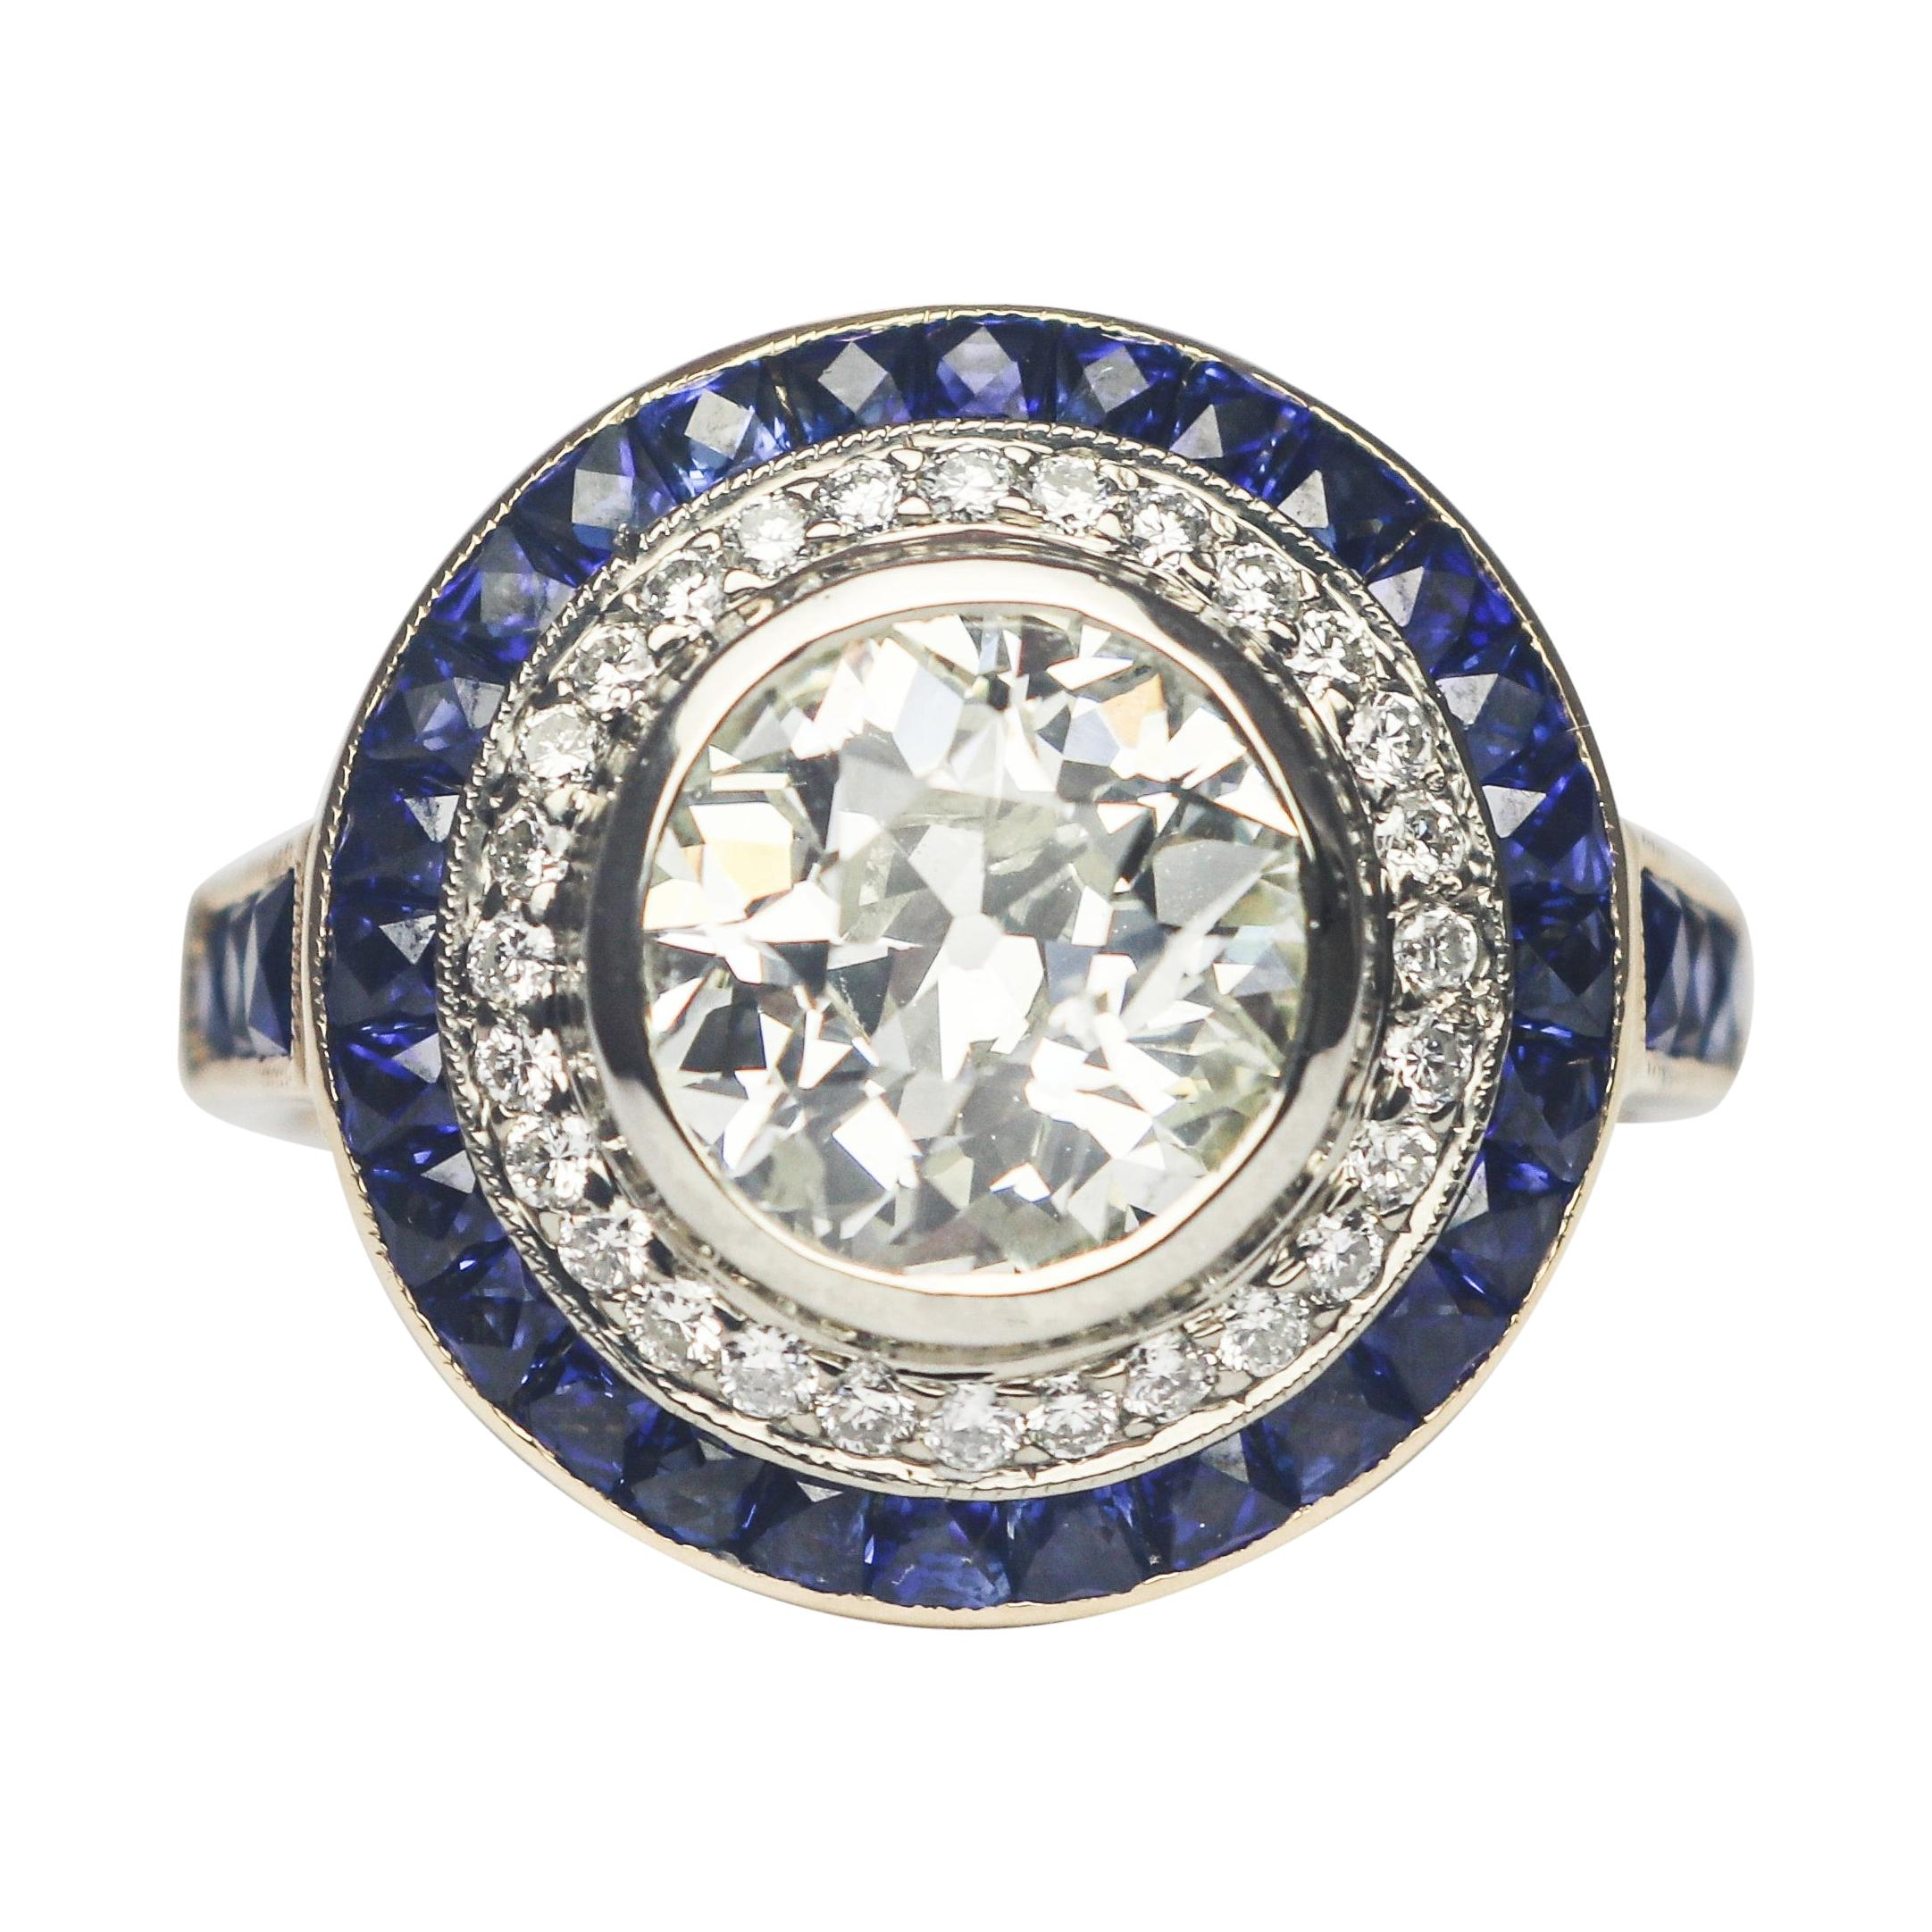 J. Birnbach GIA Certified 1.68 Carat Old European Cut and Sapphire Vintage Ring